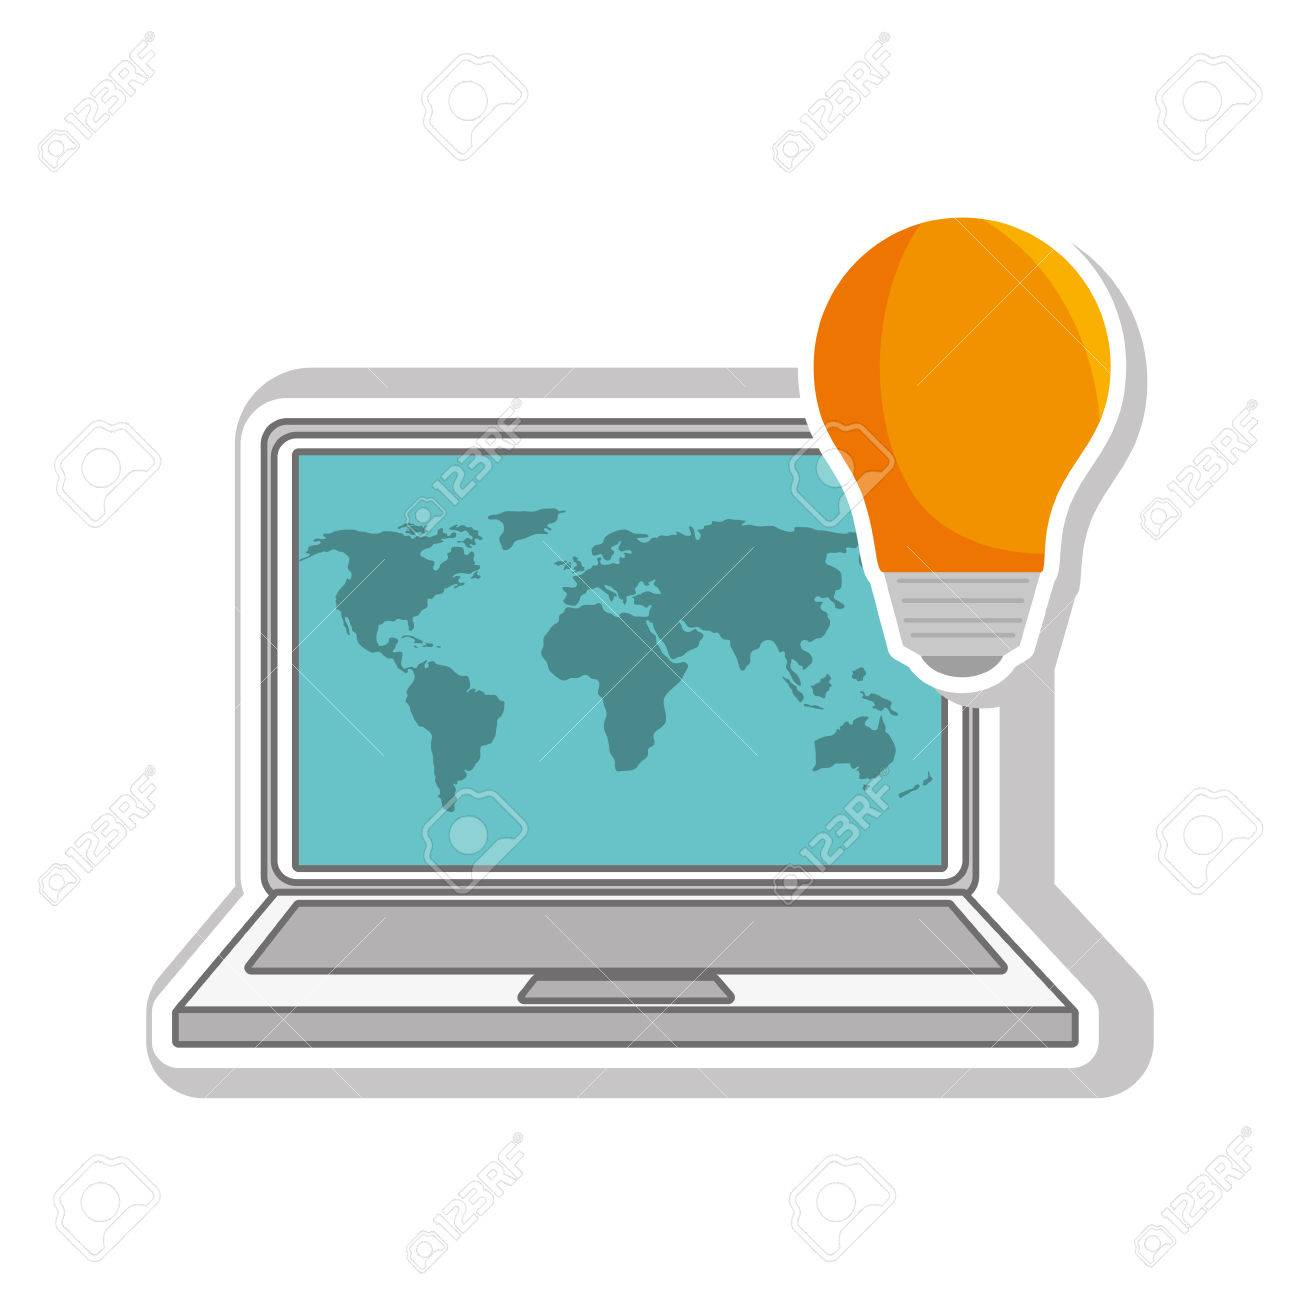 Laptop computer with world map wallpaper and bulb light icon laptop computer with world map wallpaper and bulb light icon vector illustration stock vector gumiabroncs Image collections